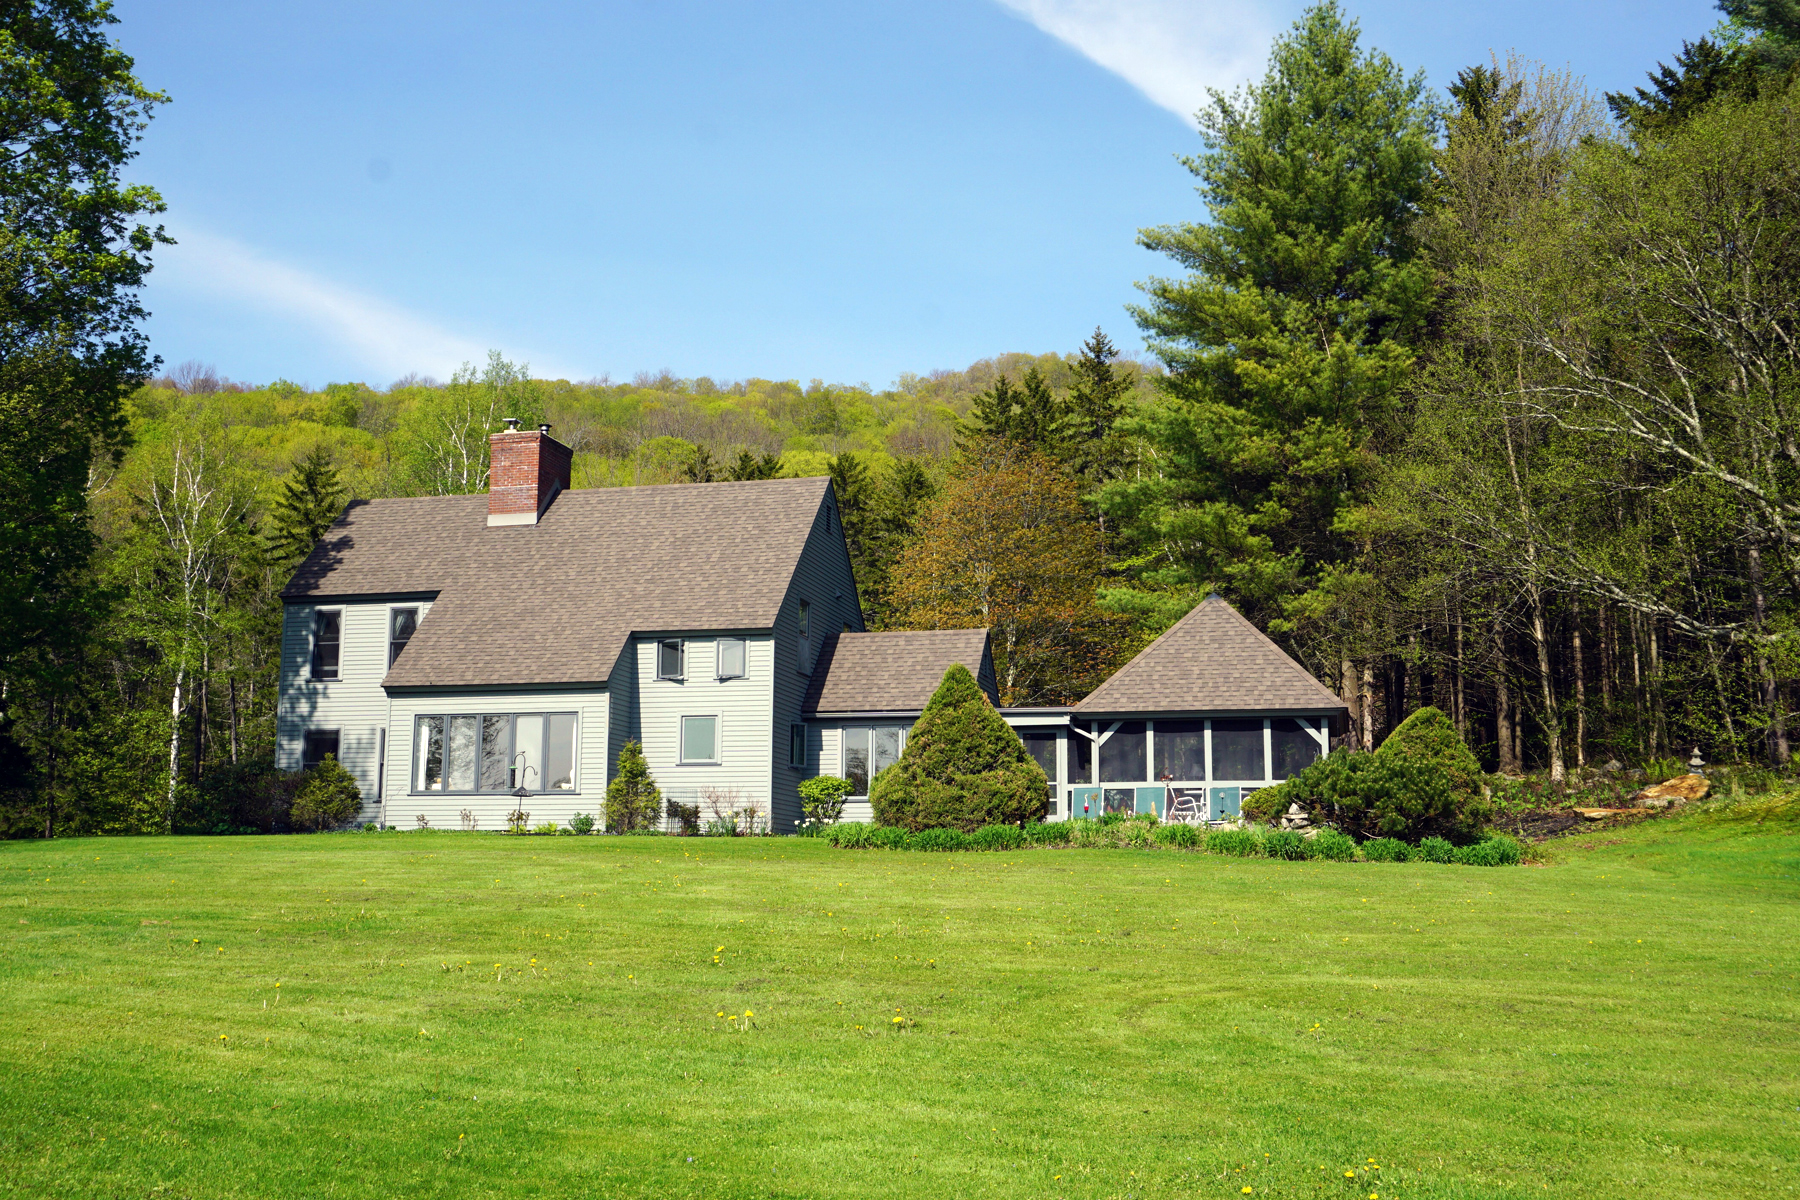 single family homes for Sale at CHITTENDEN - 14.2 ACRES WITH AMAZING VIEWS 26 German Hill Farm Rd Chittenden, Vermont 05737 United States